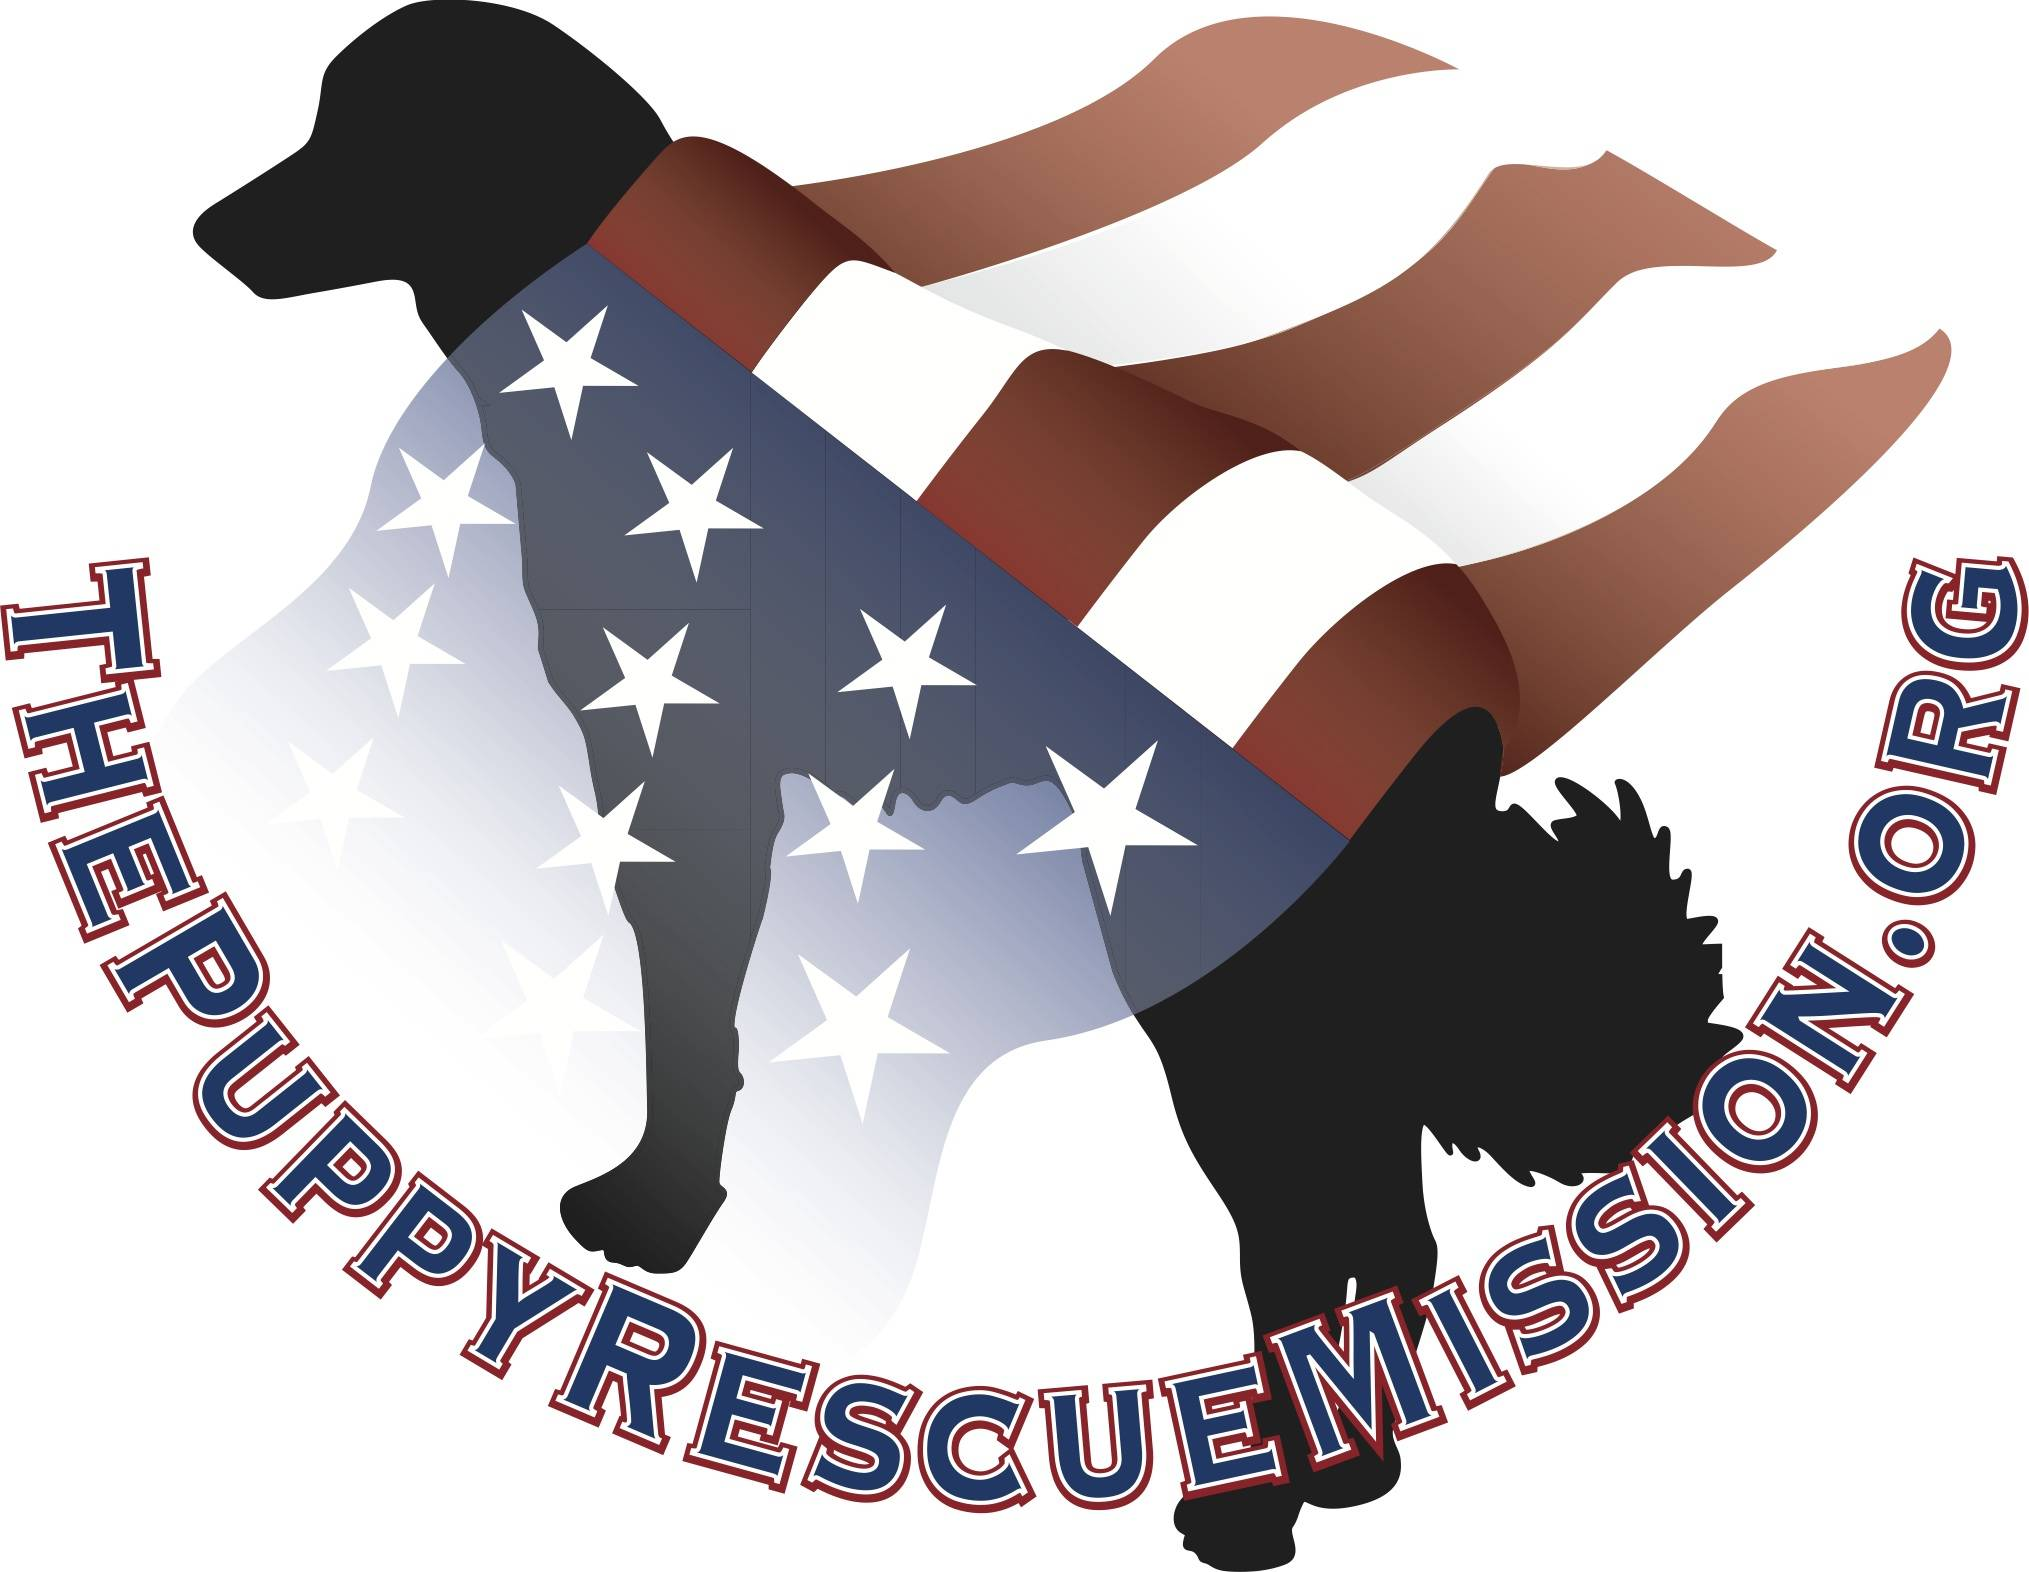 """Battle Buddy Bowling-Chicago"" raises funds to benefit The Puppy Rescue Mission, whose mission is to help bring home the animal companions to our soldiers serving in a war zone. Logo courtesy of The Puppy Rescue Mission, Inc."